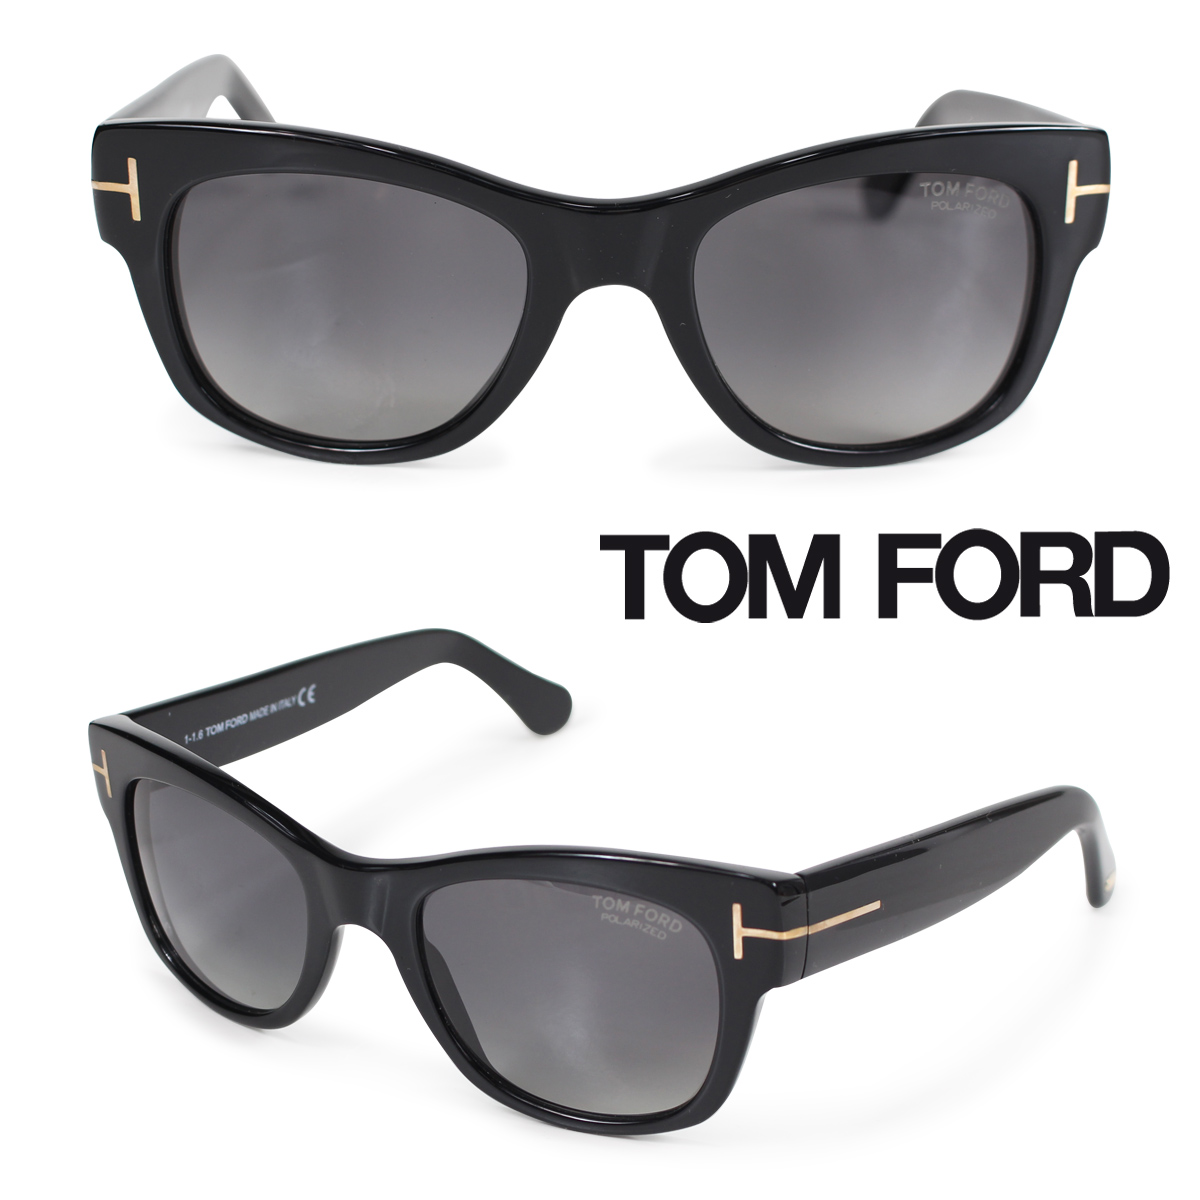 eef5b7a2891 Whats up Sports  TOM FORD CARY Tom Ford sunglasses men gap Dis ...